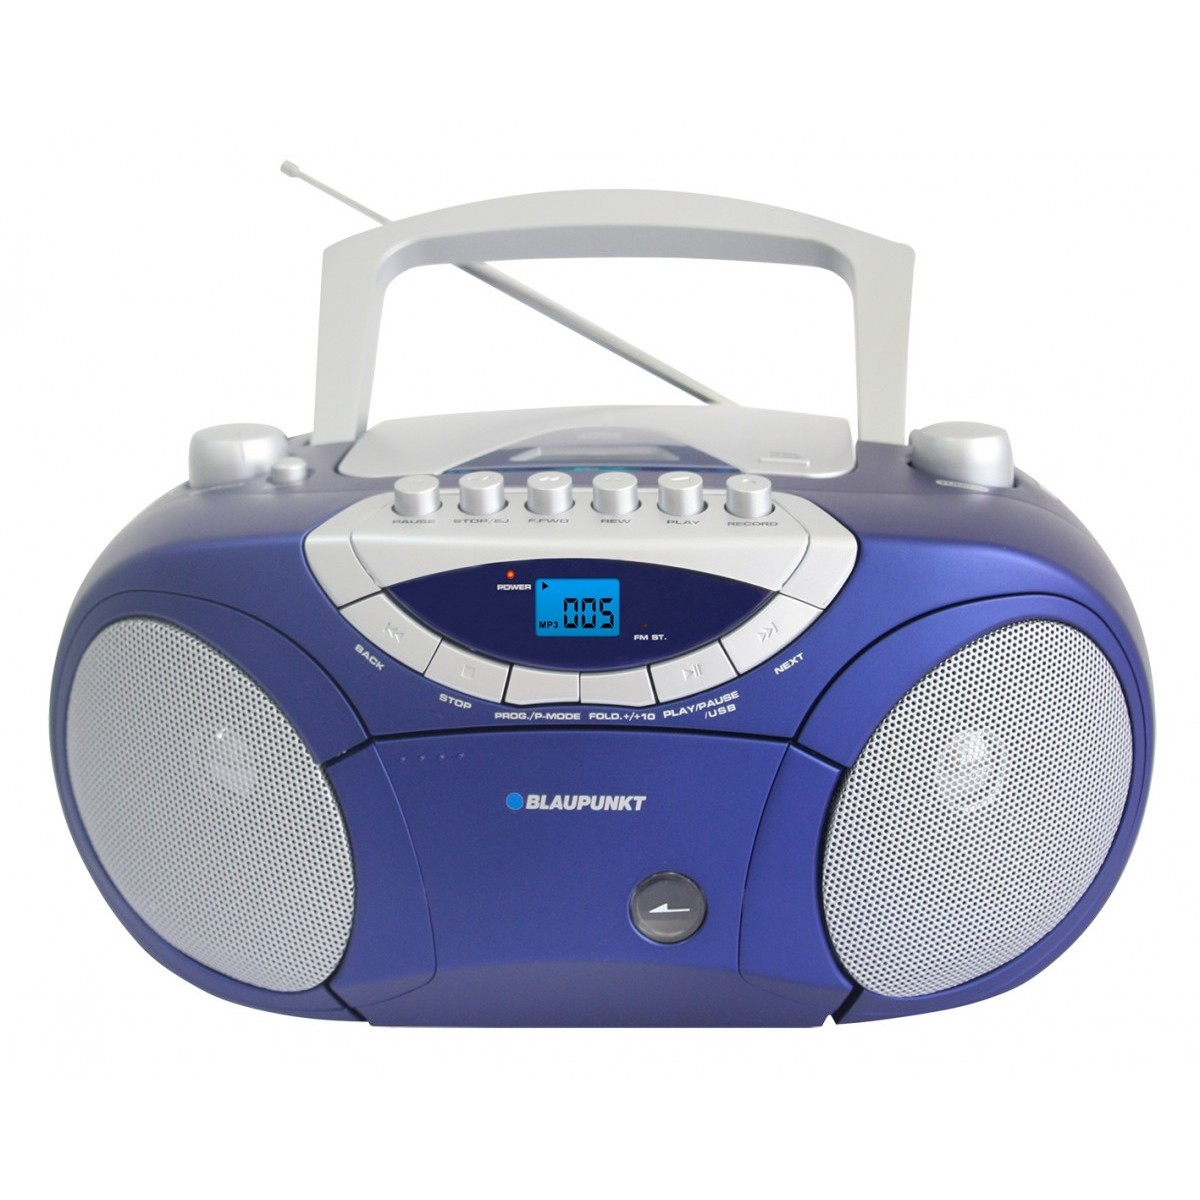 microsistem audio Boombox BB15BL, radio AM-FM, caseta, CD/MP3/USB/AUX thumbnail